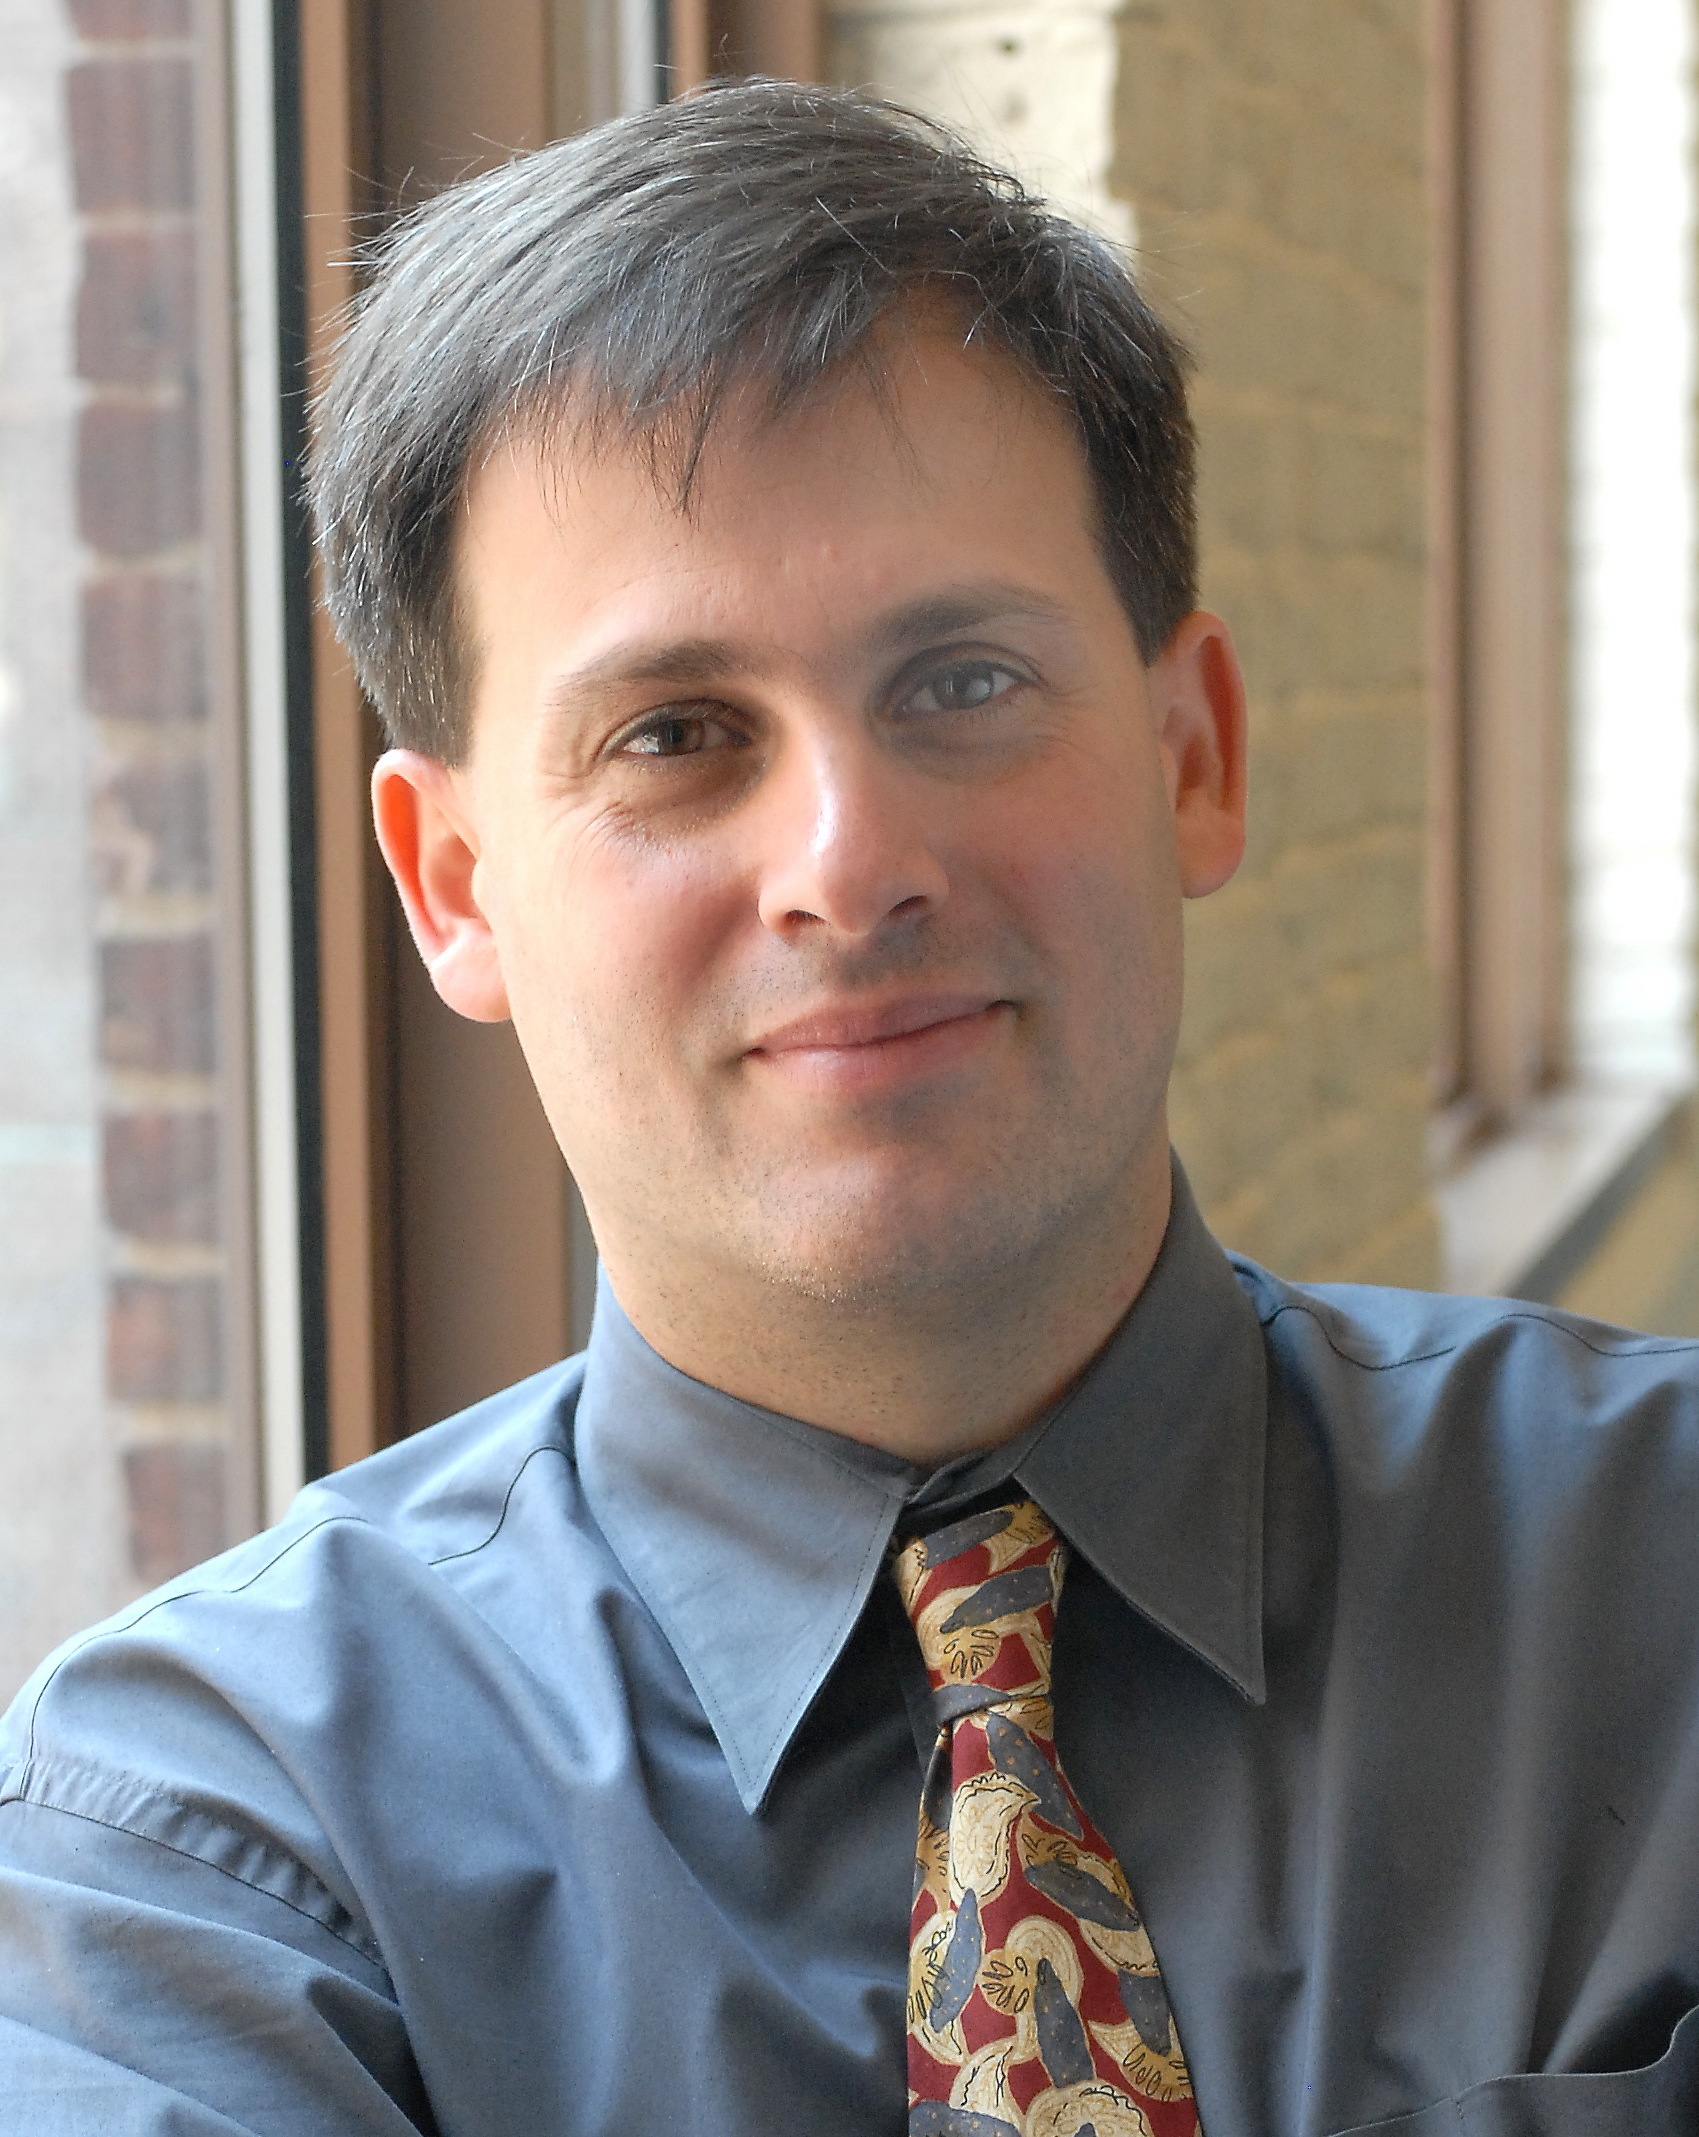 Michael Chernew, Professor of Health Care Policy